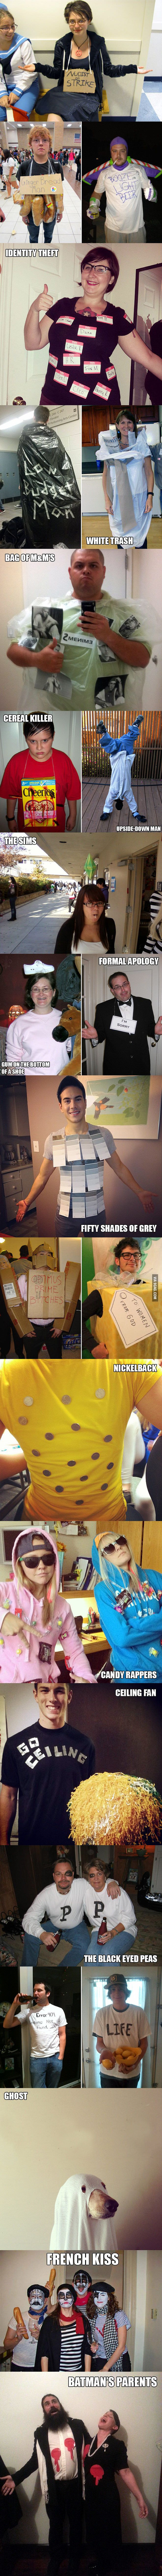 Last-minute Halloween costumes